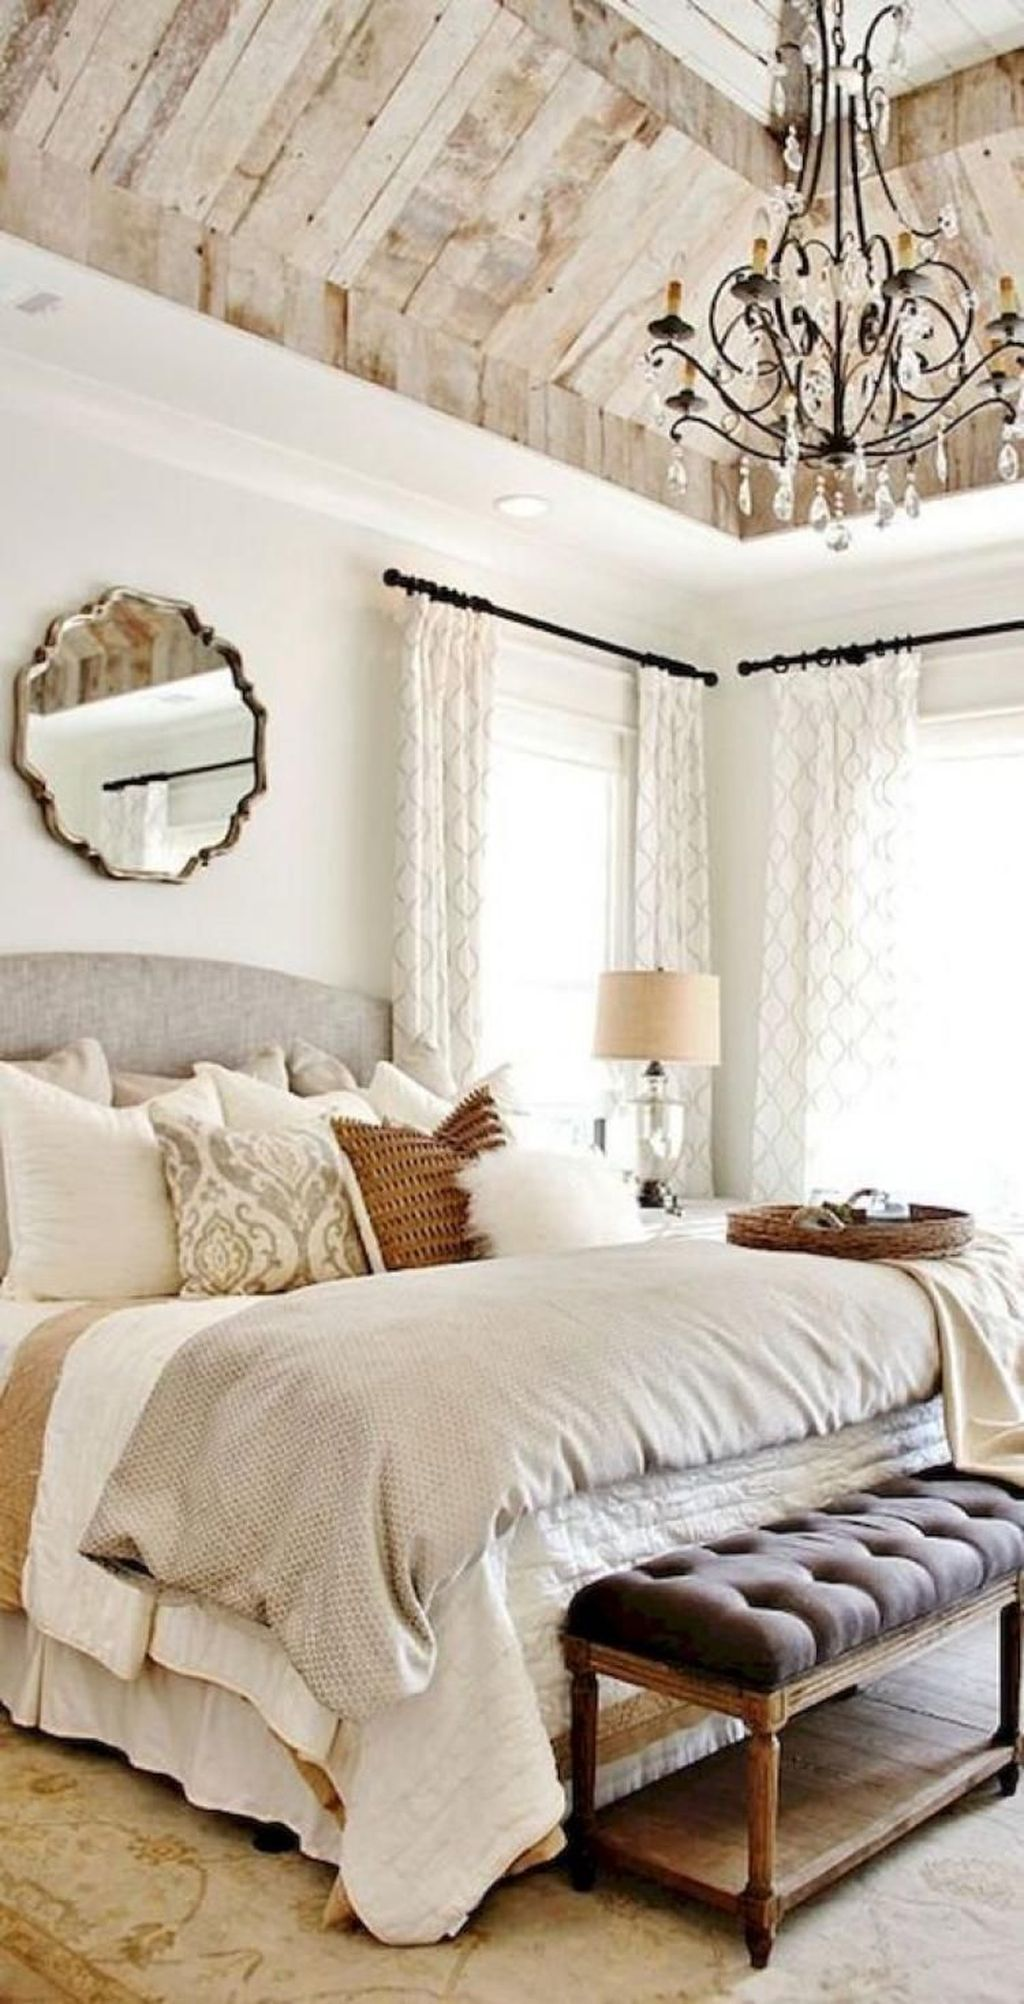 44 Awesome Modern Farmhouse Bedroom Decor Ideas You Will Love